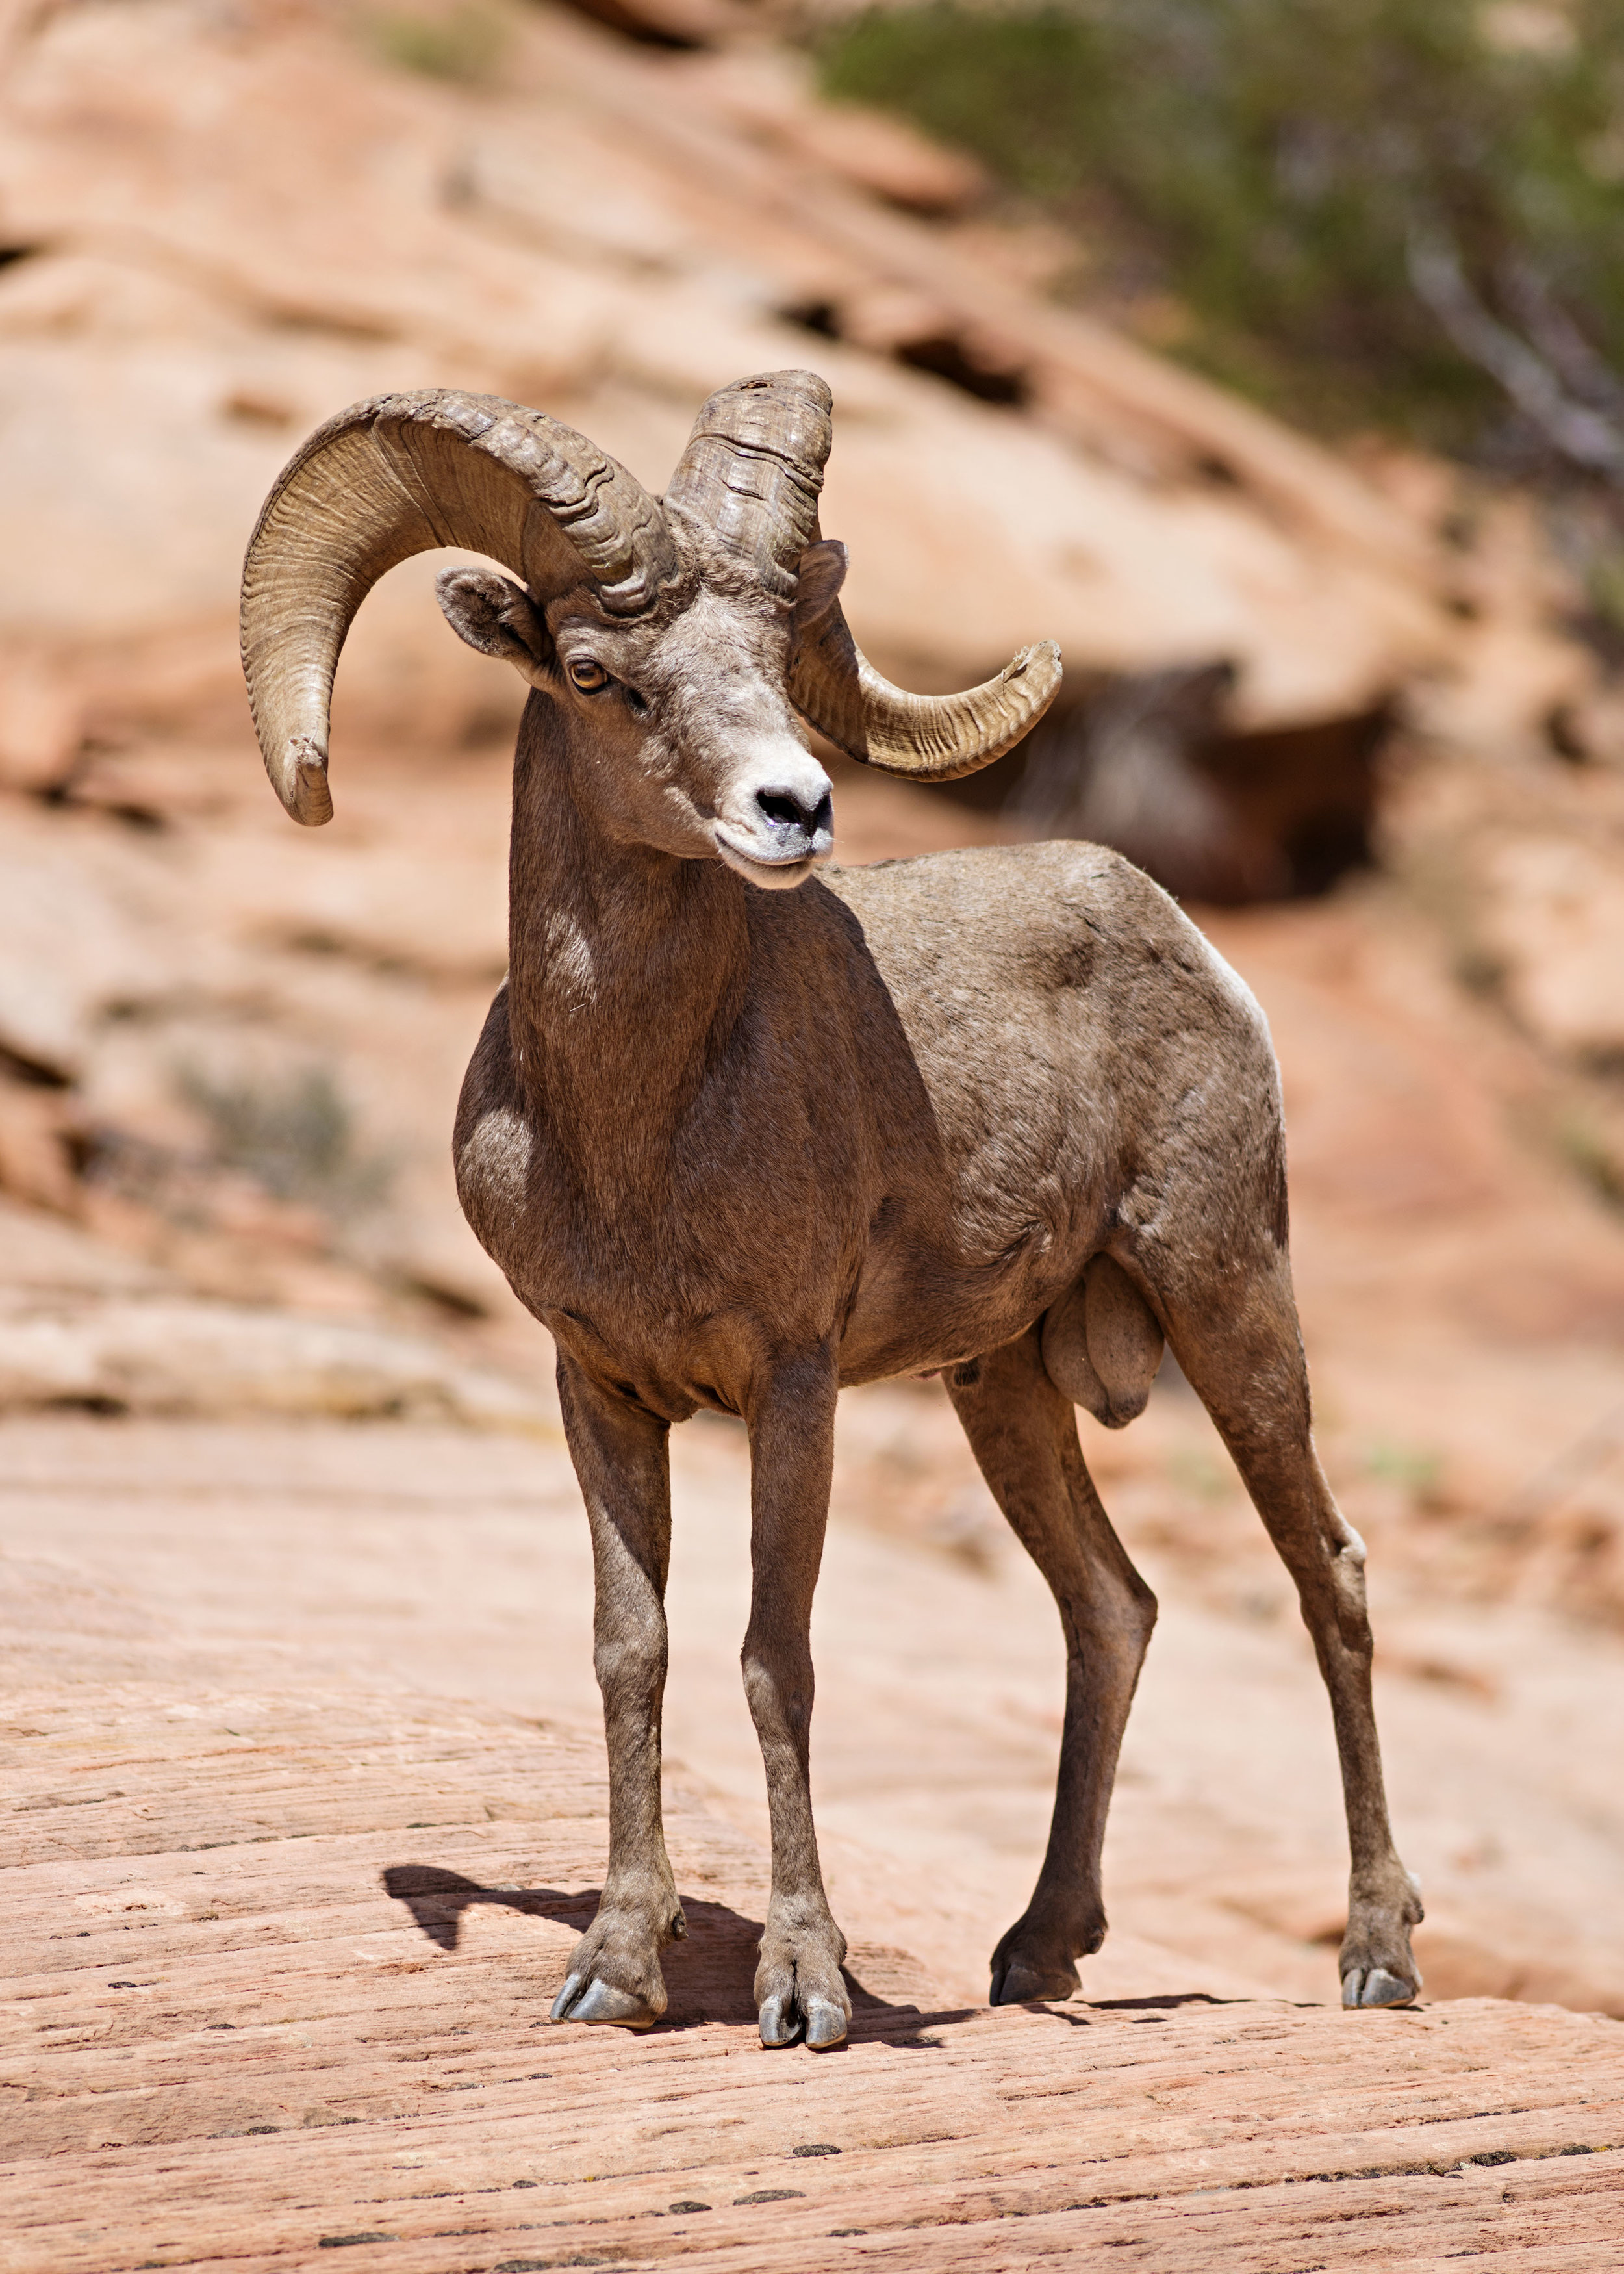 A ram poses confidently for photos in Zion National Park.  Nikon D800, Nikkor 300mm lens, ISO 250, f4.5, 1/2000 sec.